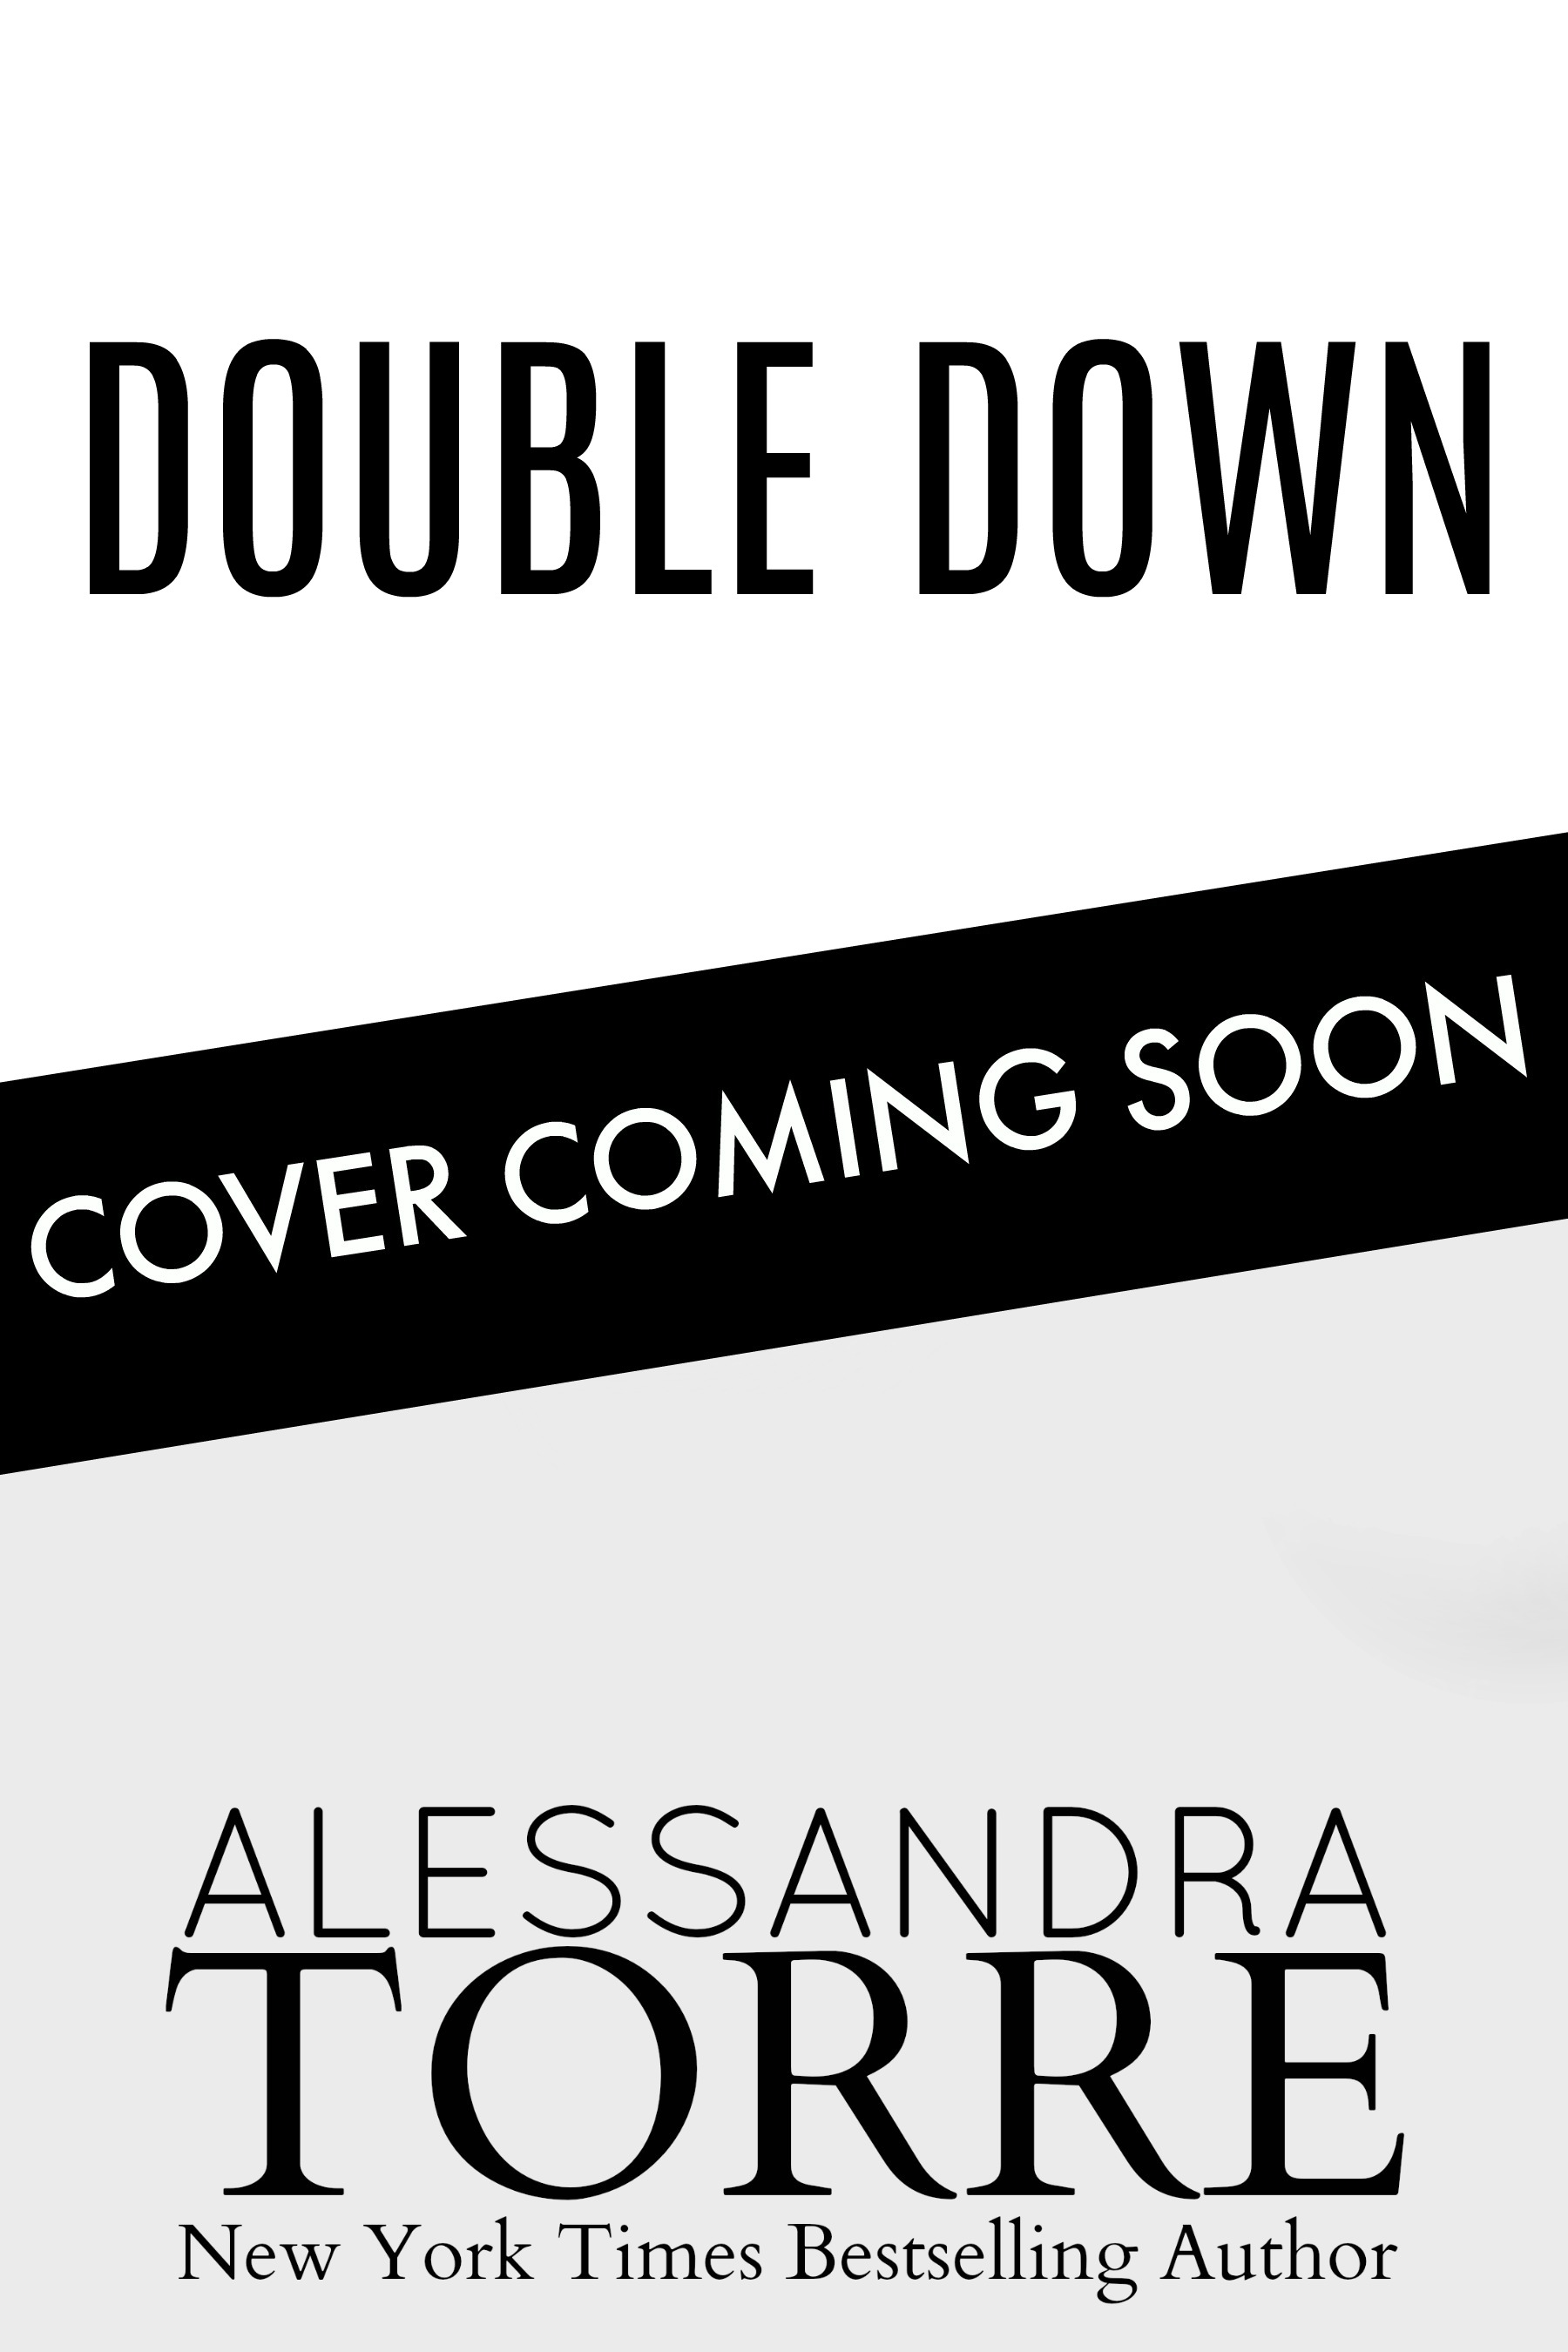 DOUBLE DOWN temp cover WHITE.jpg